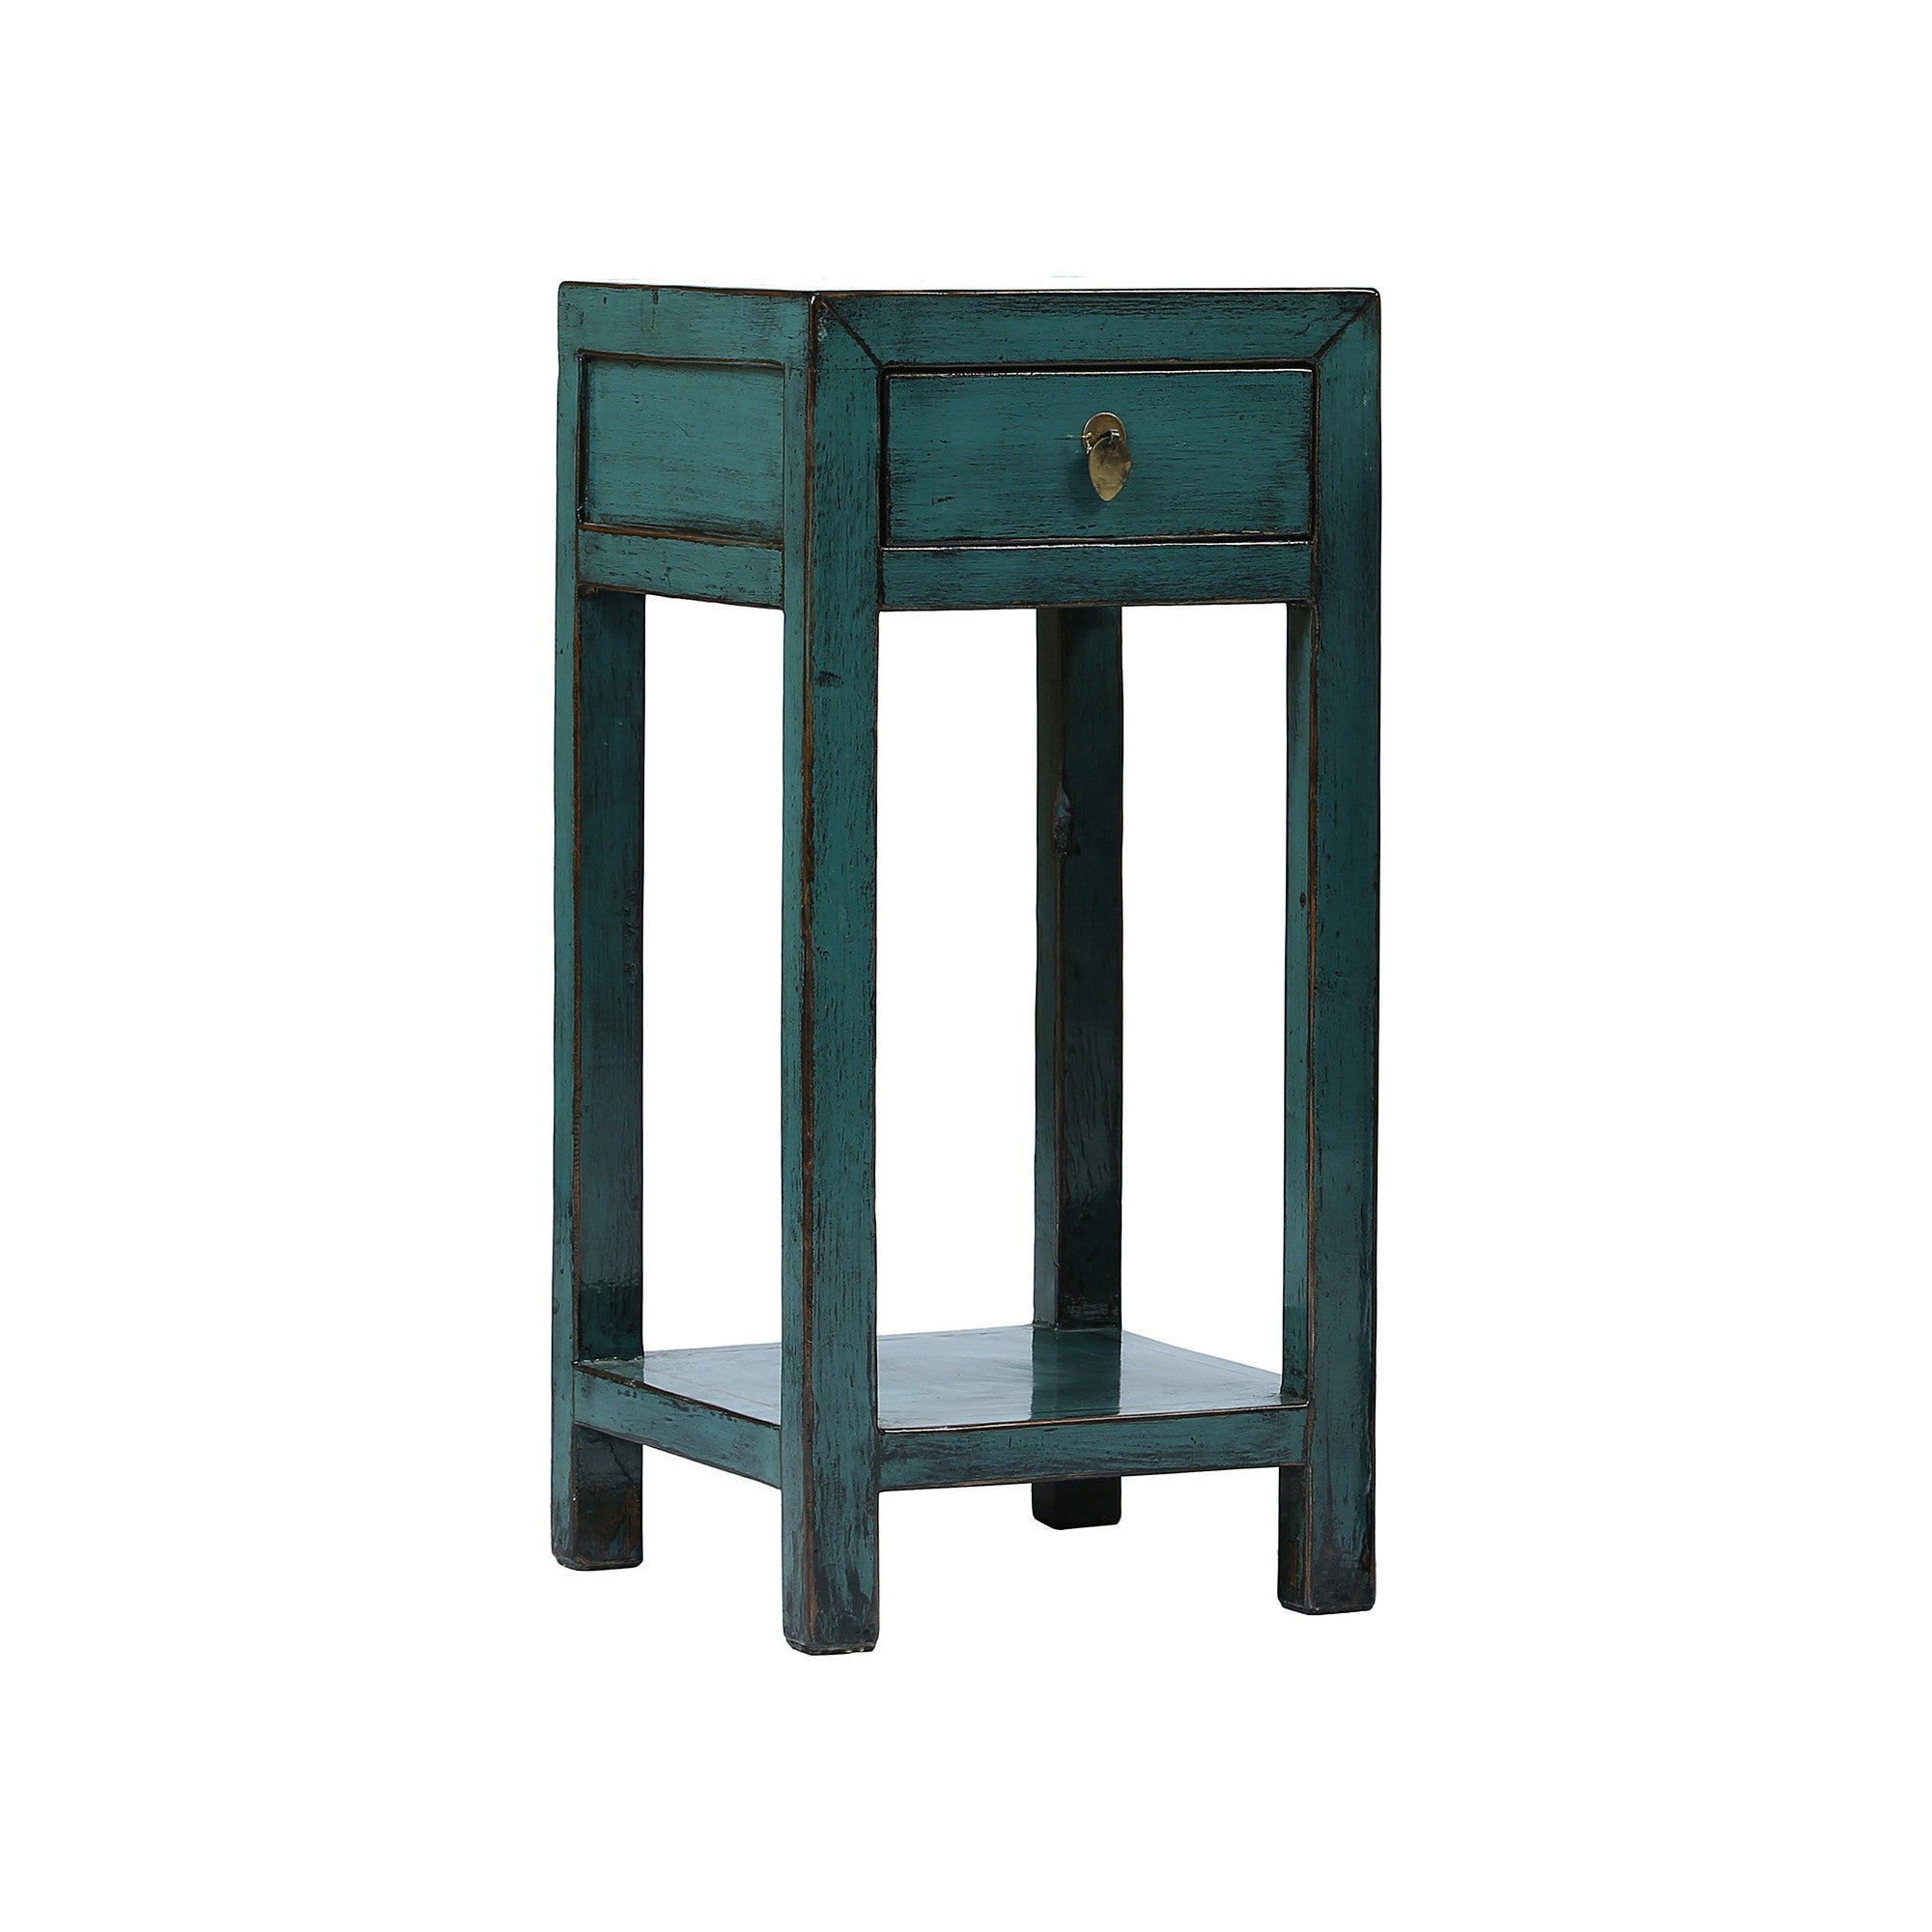 Square Blue Chinese Side Table with Shelf side view